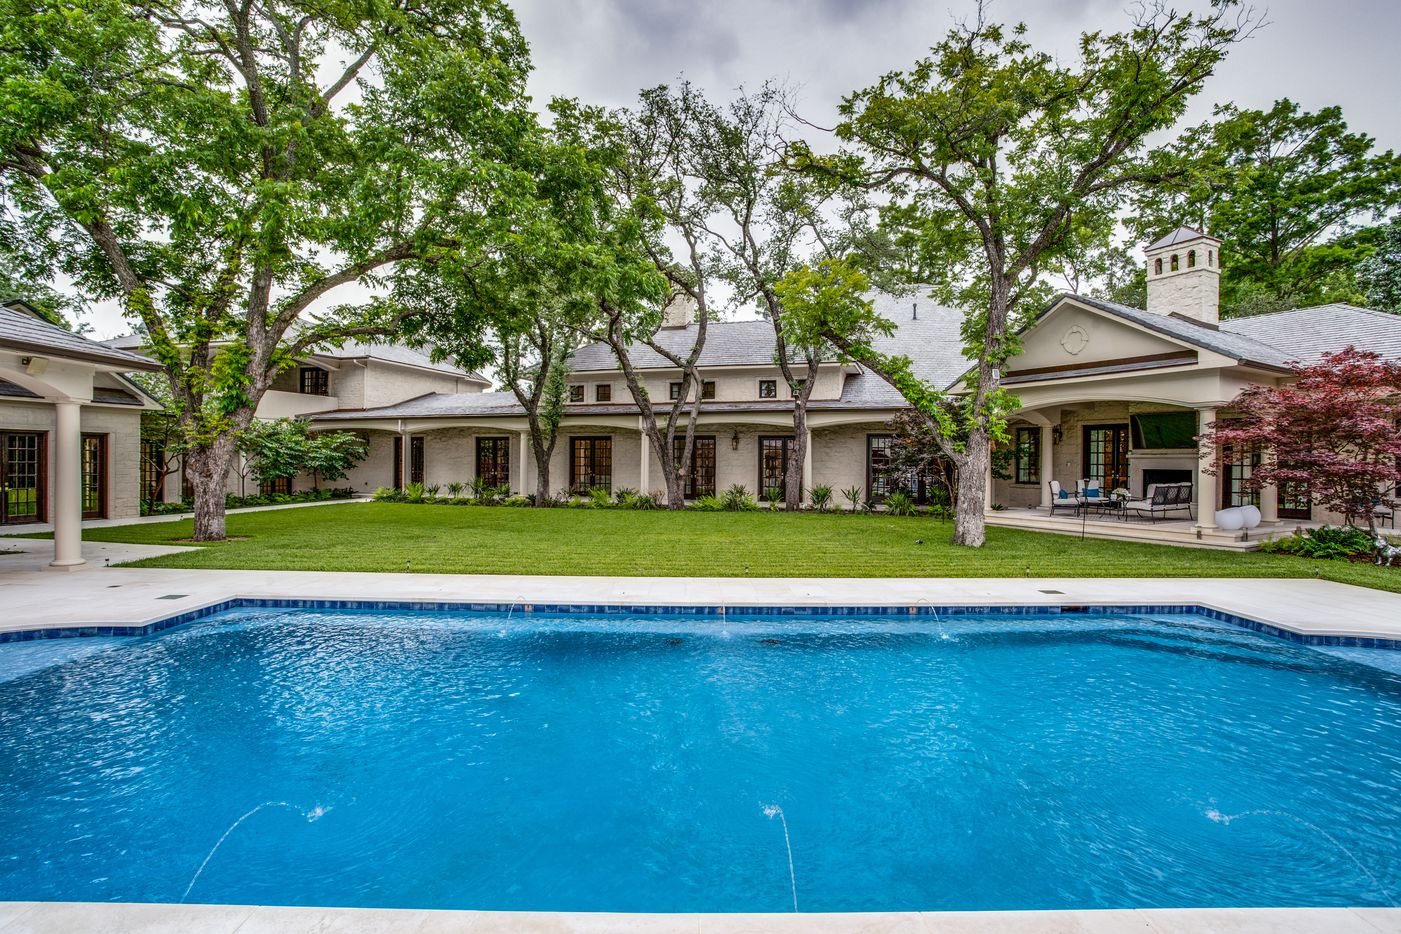 This home at 9520 Hathaway Street in Dallas is listed for $12.9 million.